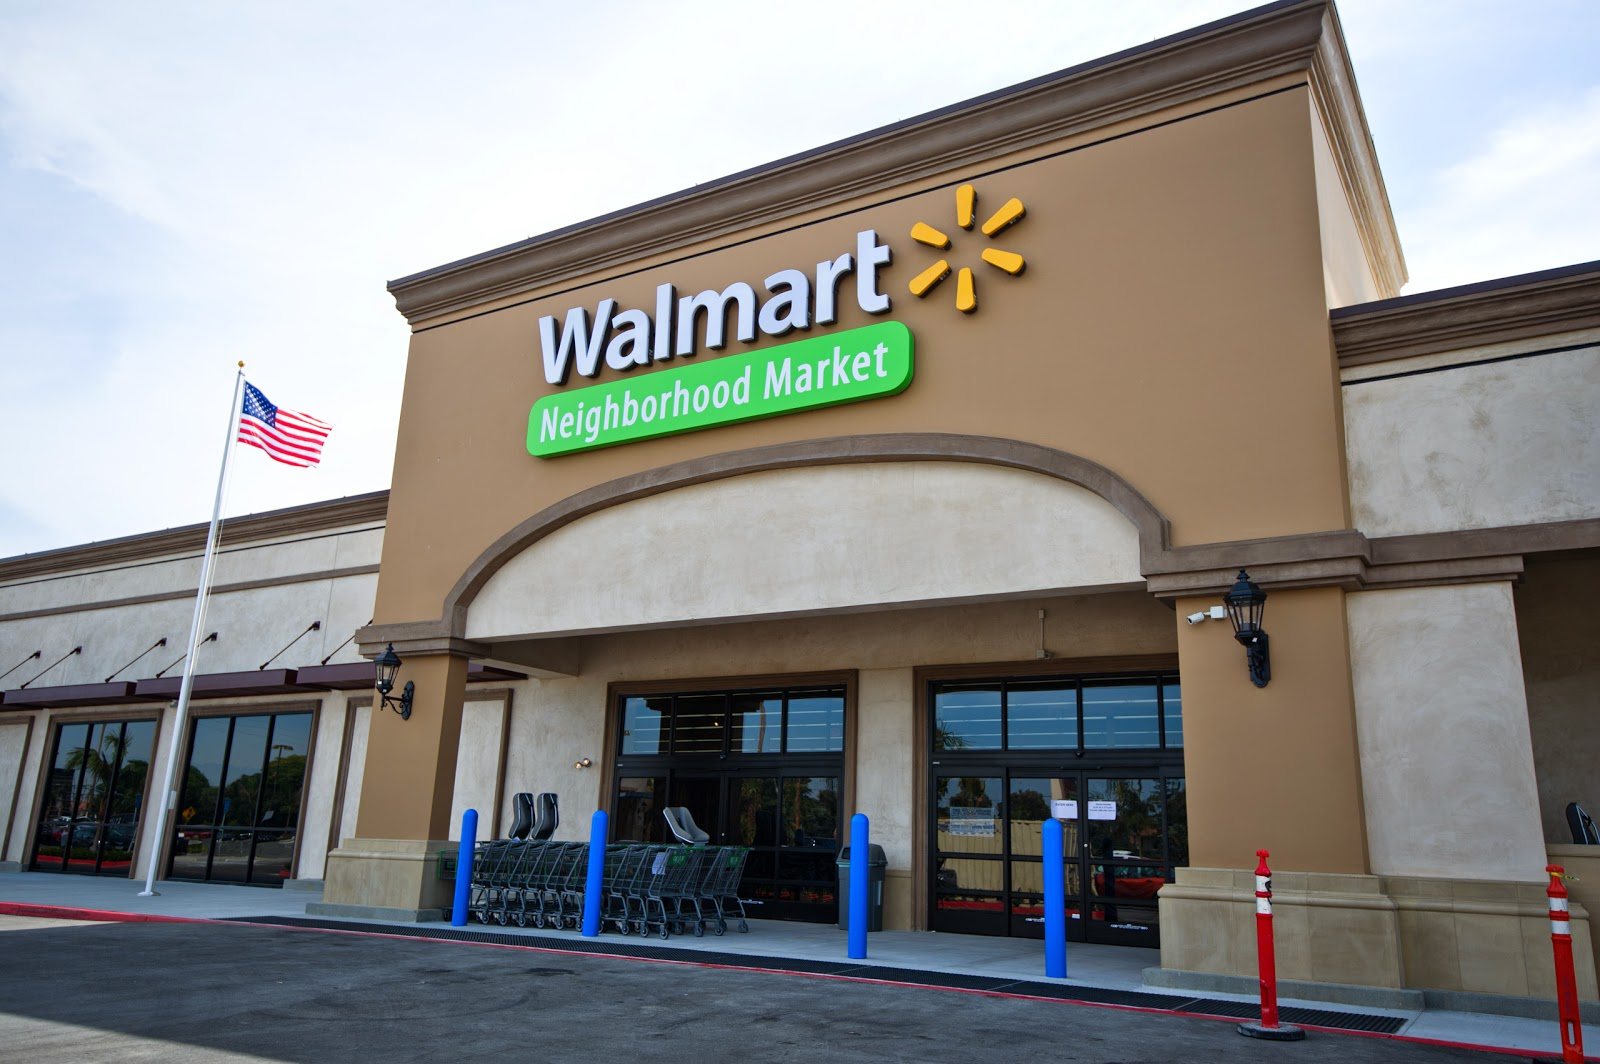 Grand Opening tomorrow: Walmart Neighborhood Market in Riverside! on Diane's Vintage Zest! #GOWalmart #cbias